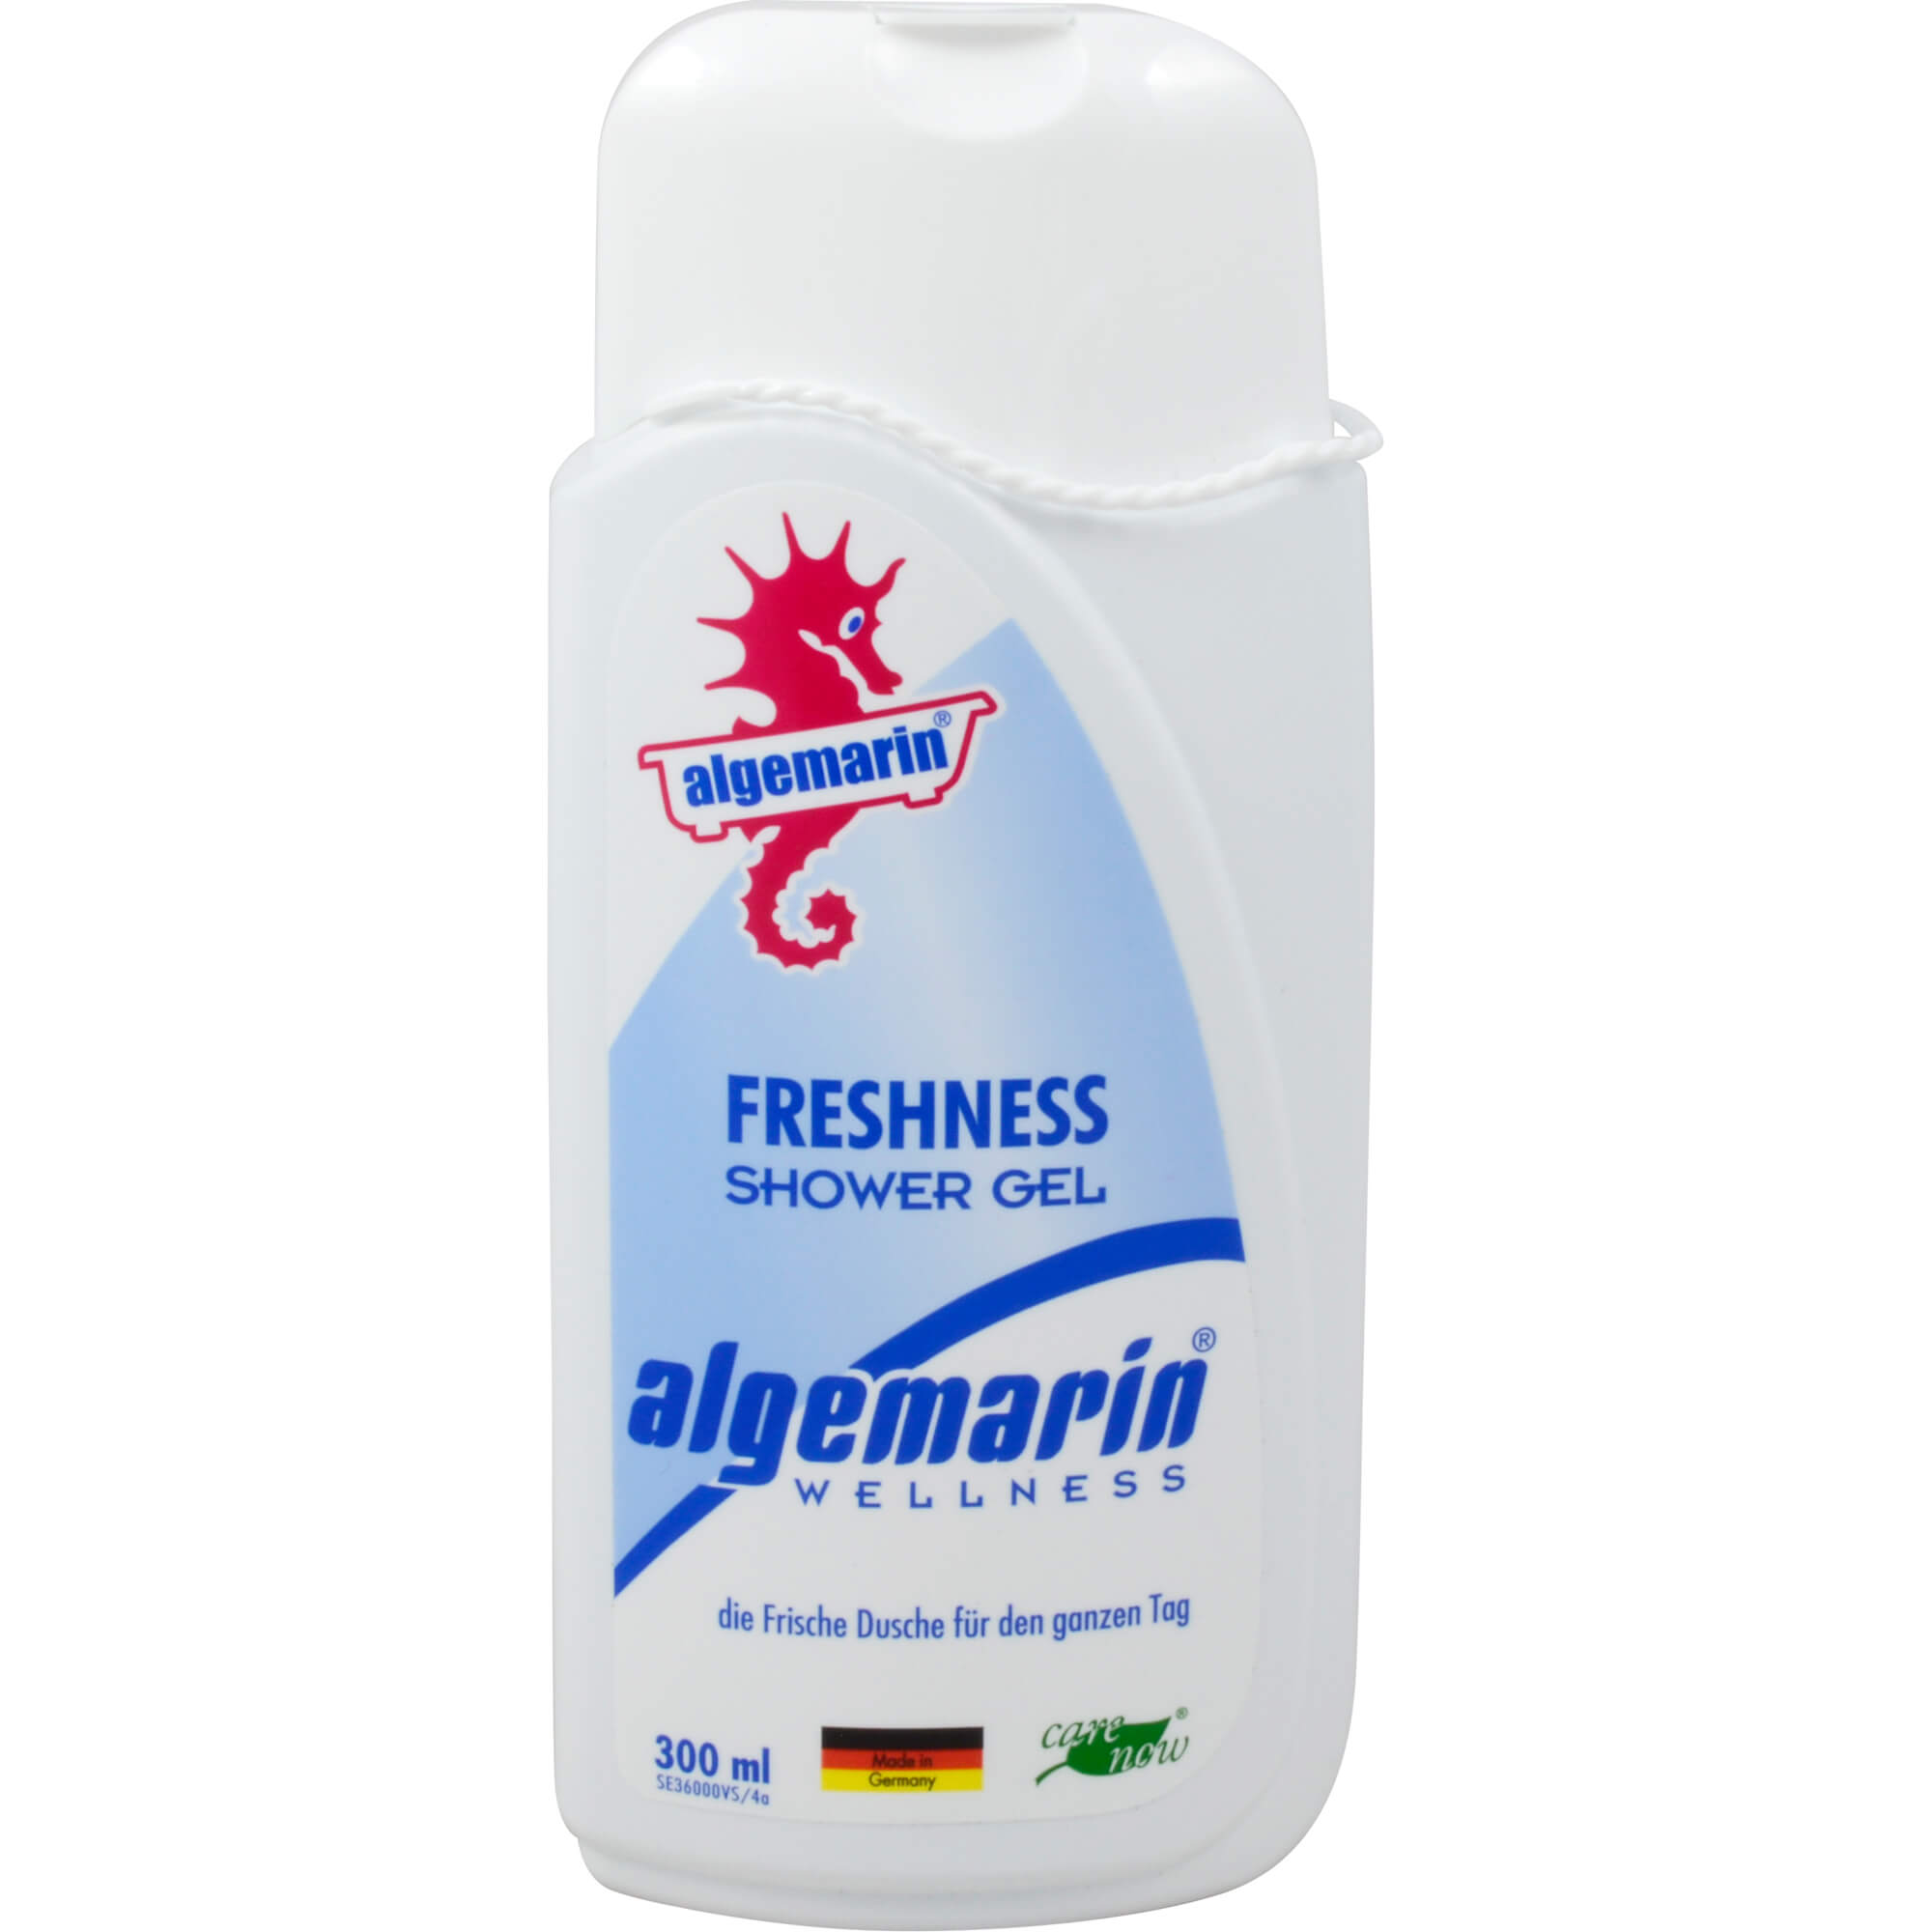 ALGEMARIN FRESHNESS SHOWER